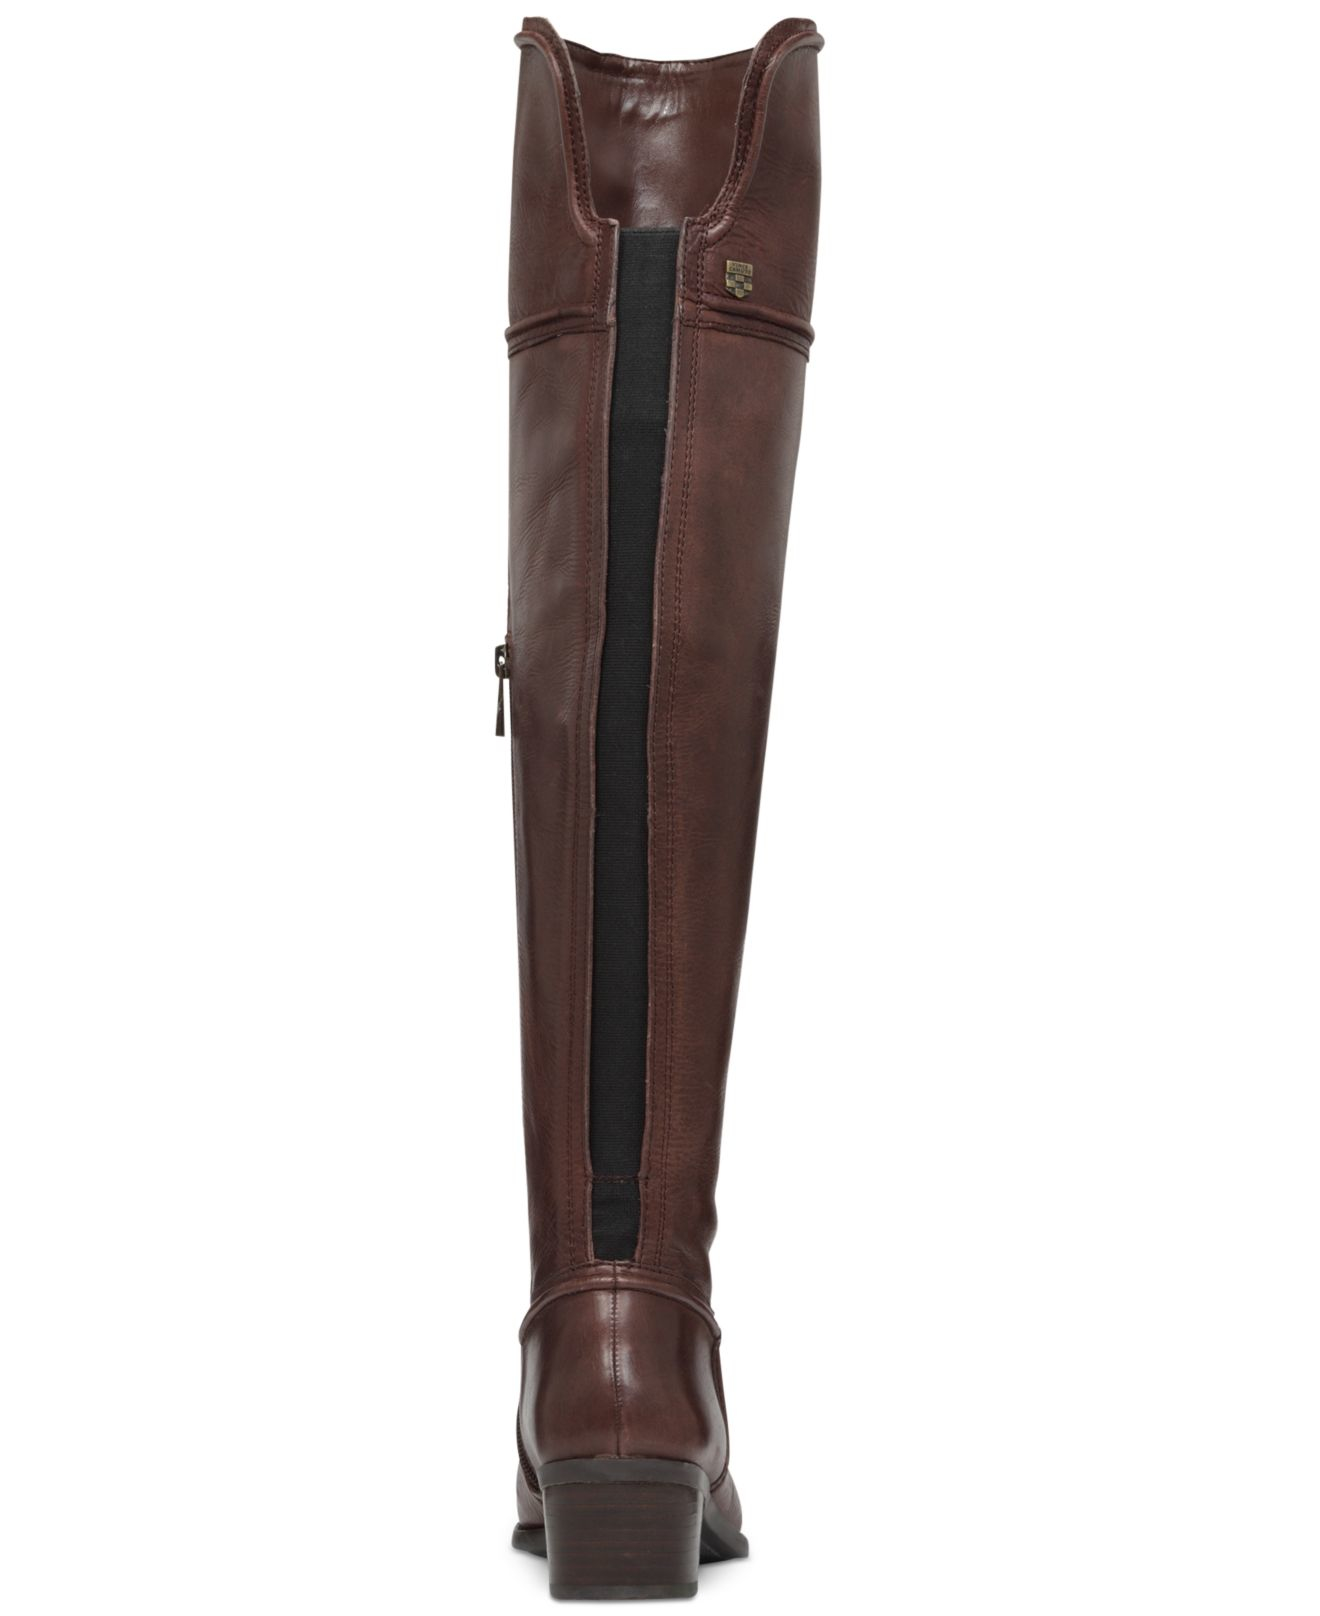 a554d5b525c Lyst - Vince Camuto Baldwin Over The Knee Boots in Brown